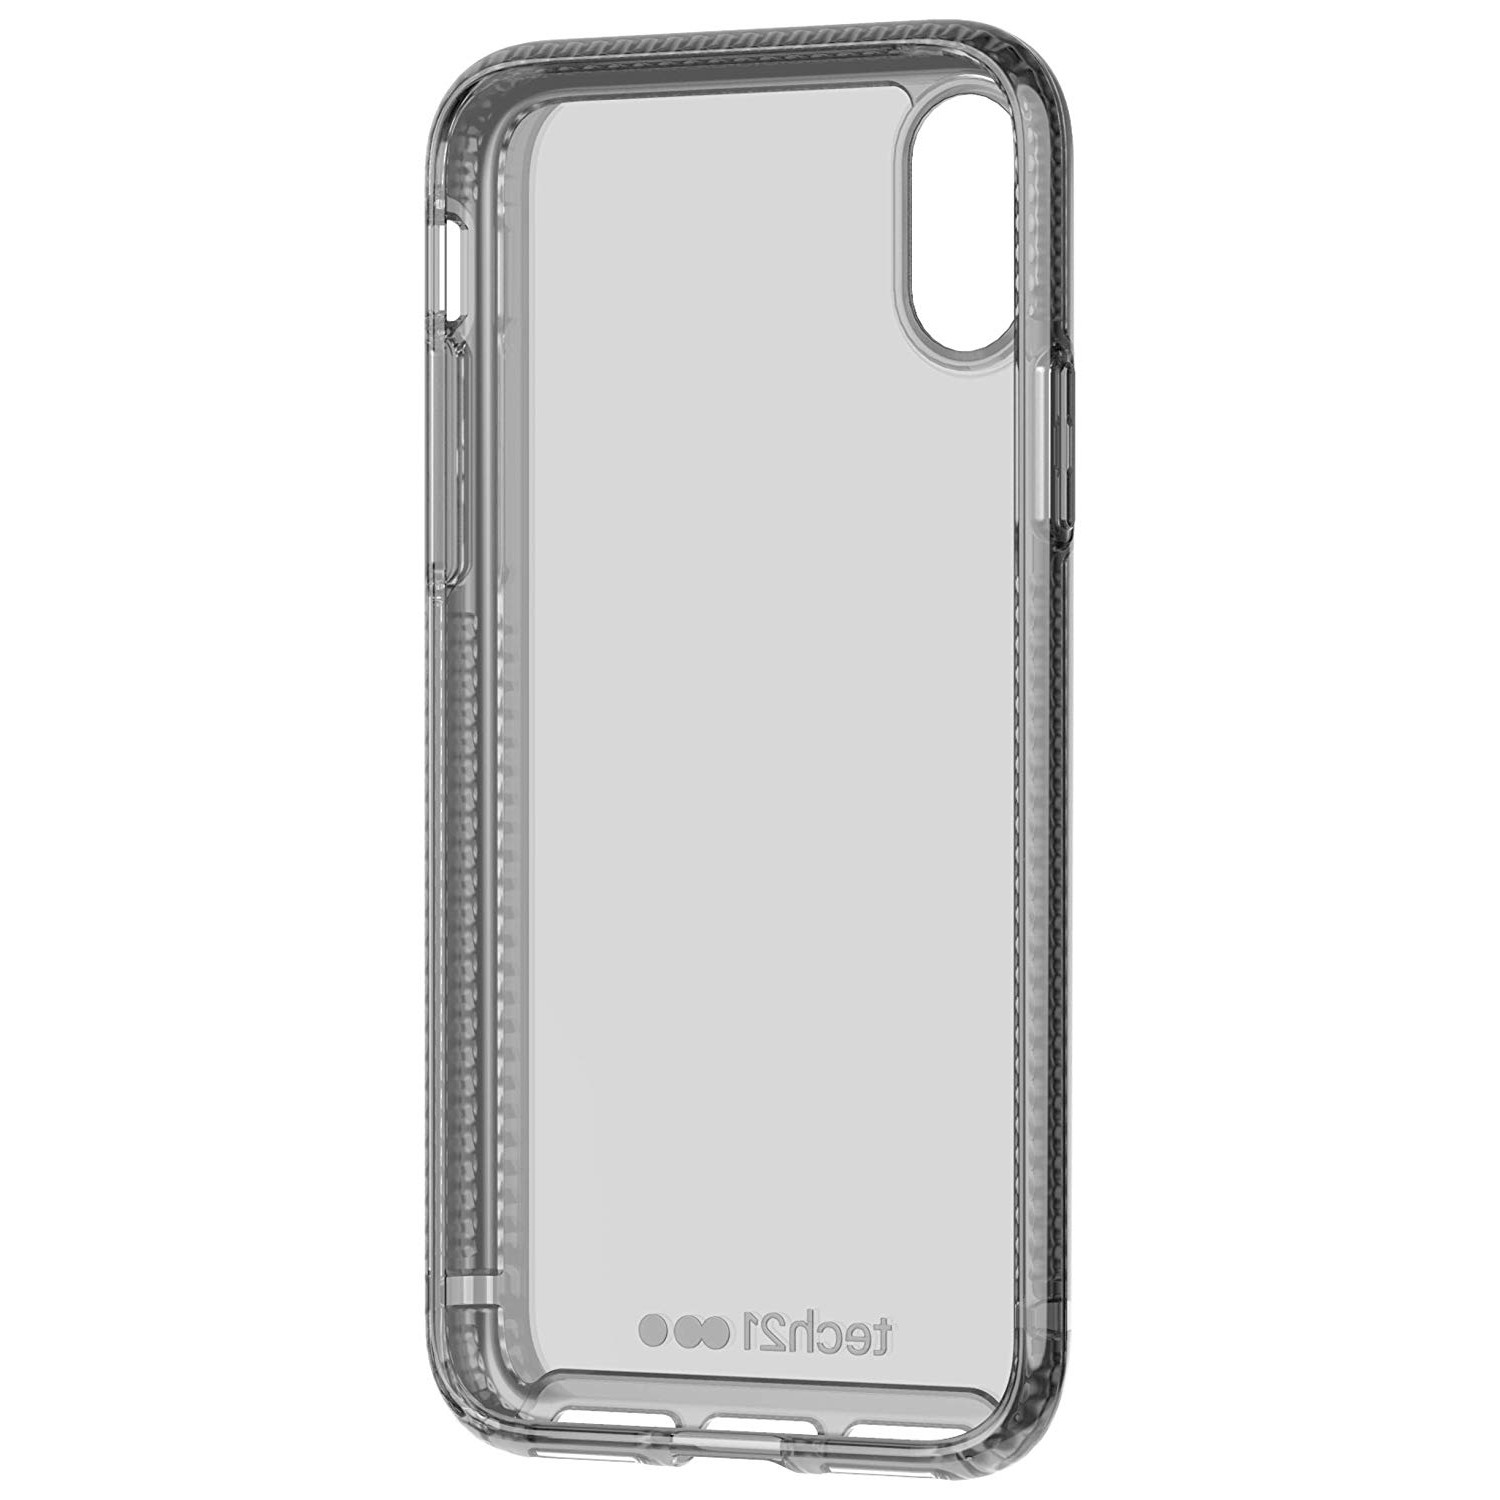 Tech21 Pure Tint - iPhone 11 Pro Case